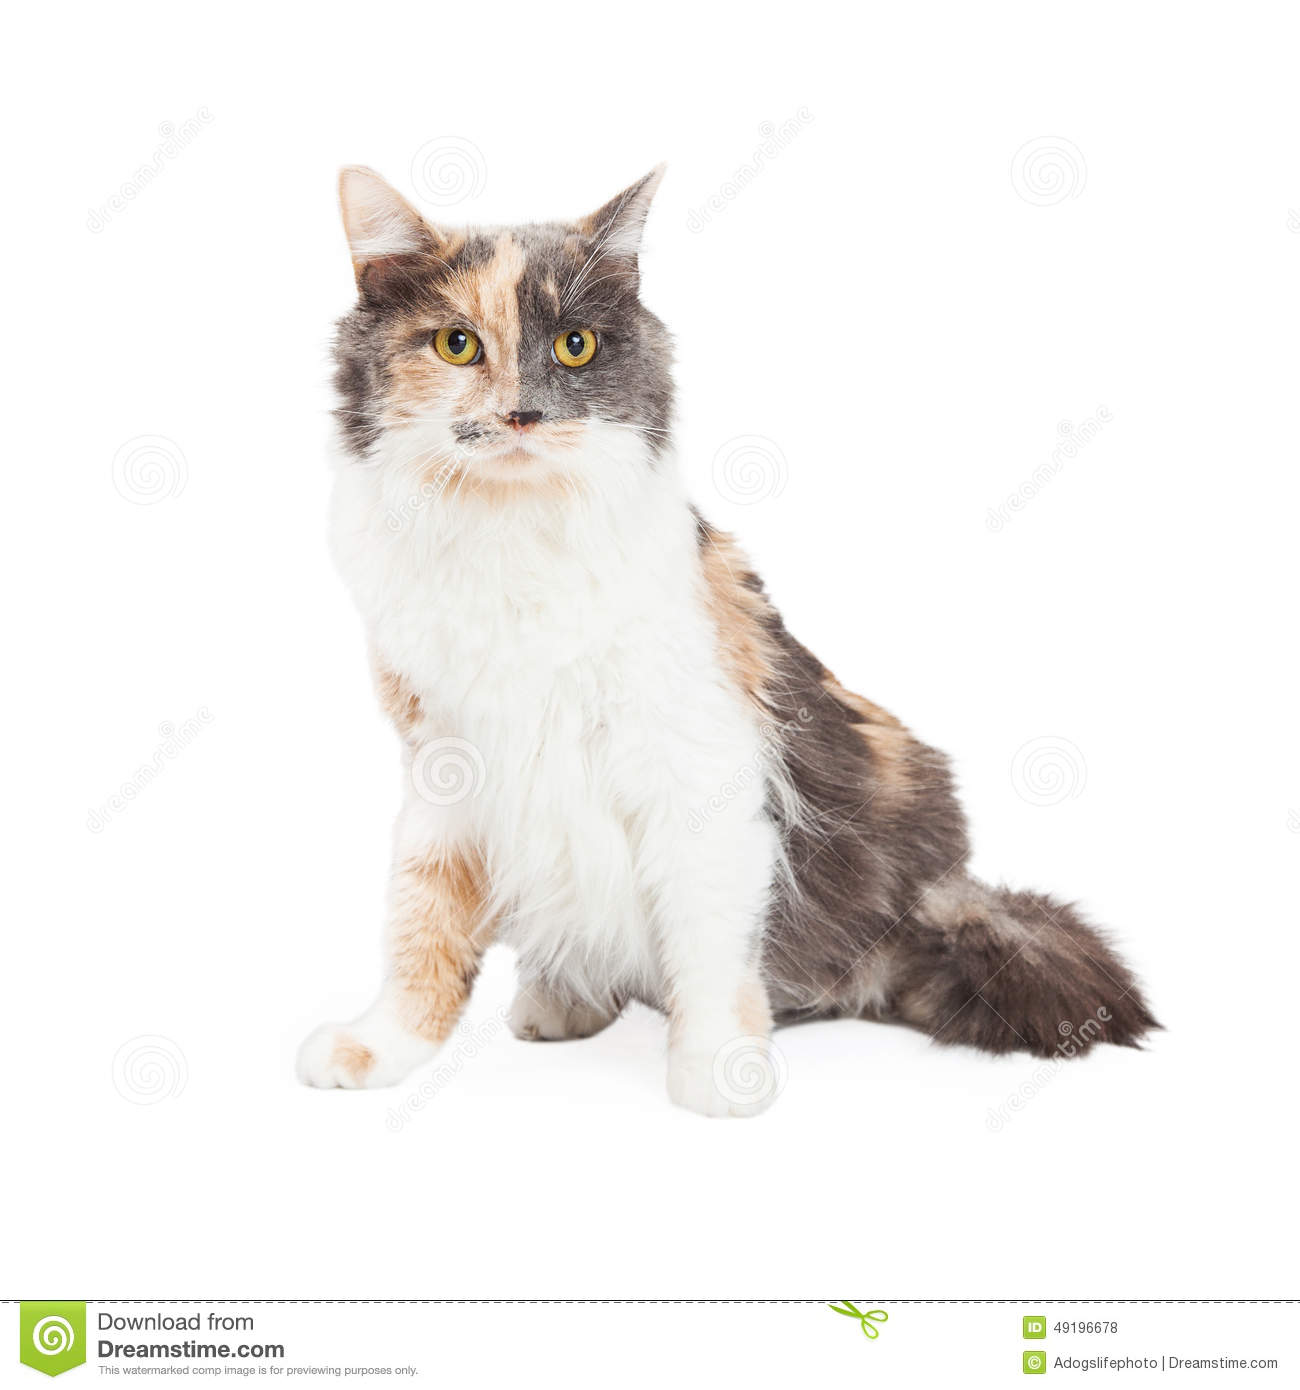 Beautiful Calico Cat Sitting Stock Photo - Image of center, fawn